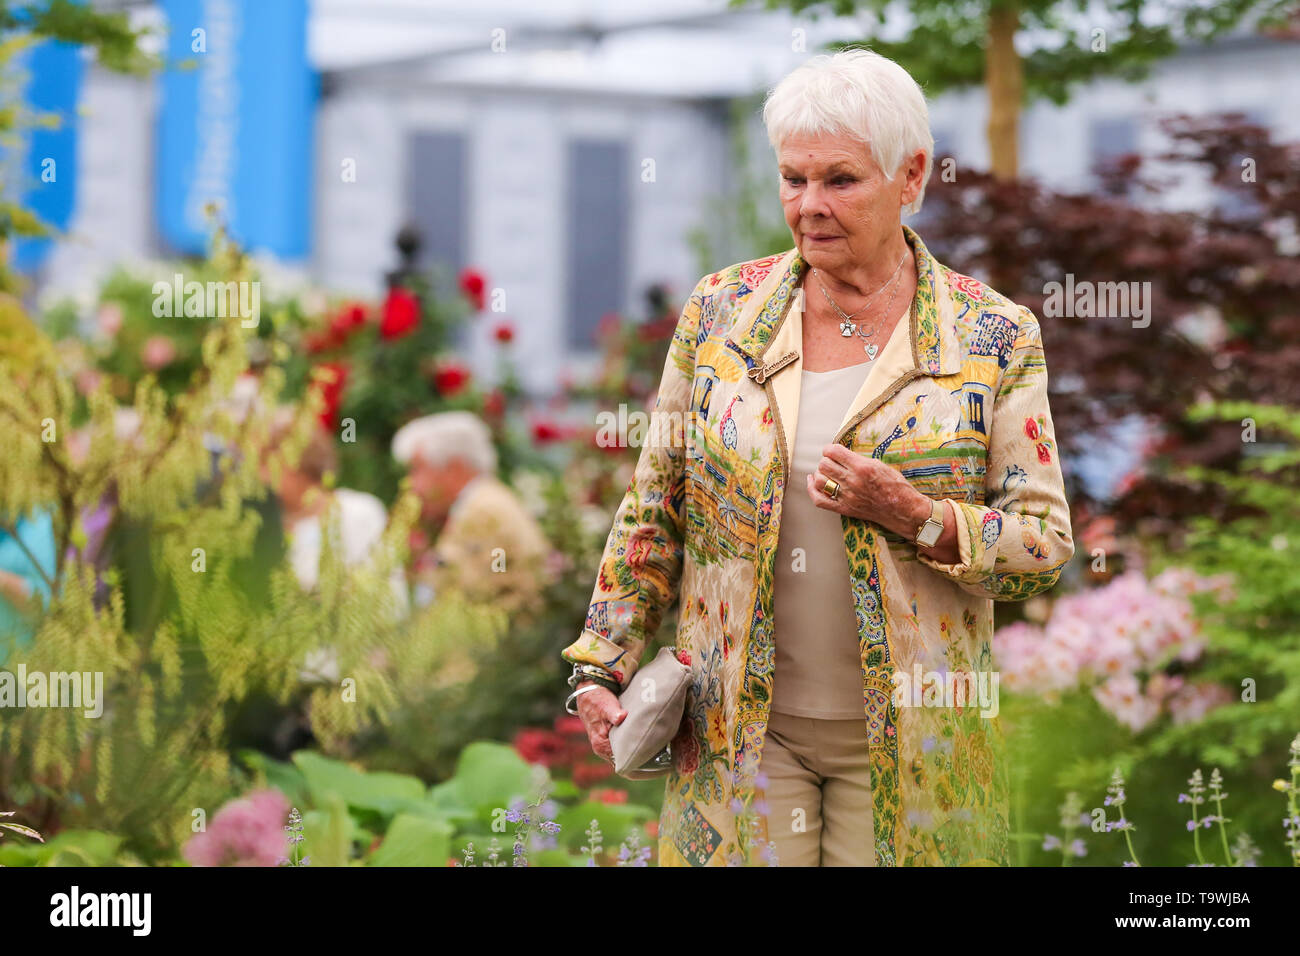 May 20, 2019 - London, United Kingdom - Dame Judith Dench is seen at the Hillier Nurseries. .The Royal Horticultural Society Chelsea Flower Show is an annual garden show over five days in the grounds of the Royal Hospital Chelsea in West London. The show is open to the public from 21 May until 25 May 2019.....Dame Judith Dench seen during the Chelsea Flower Show..The Royal Horticultural Society Chelsea Flower Show is an annual garden show over five days in the grounds of the Royal Hospital Chelsea in West London. The show is open to the public from 21 May until 25 May 2019. (Credit Image: © Di Stock Photo